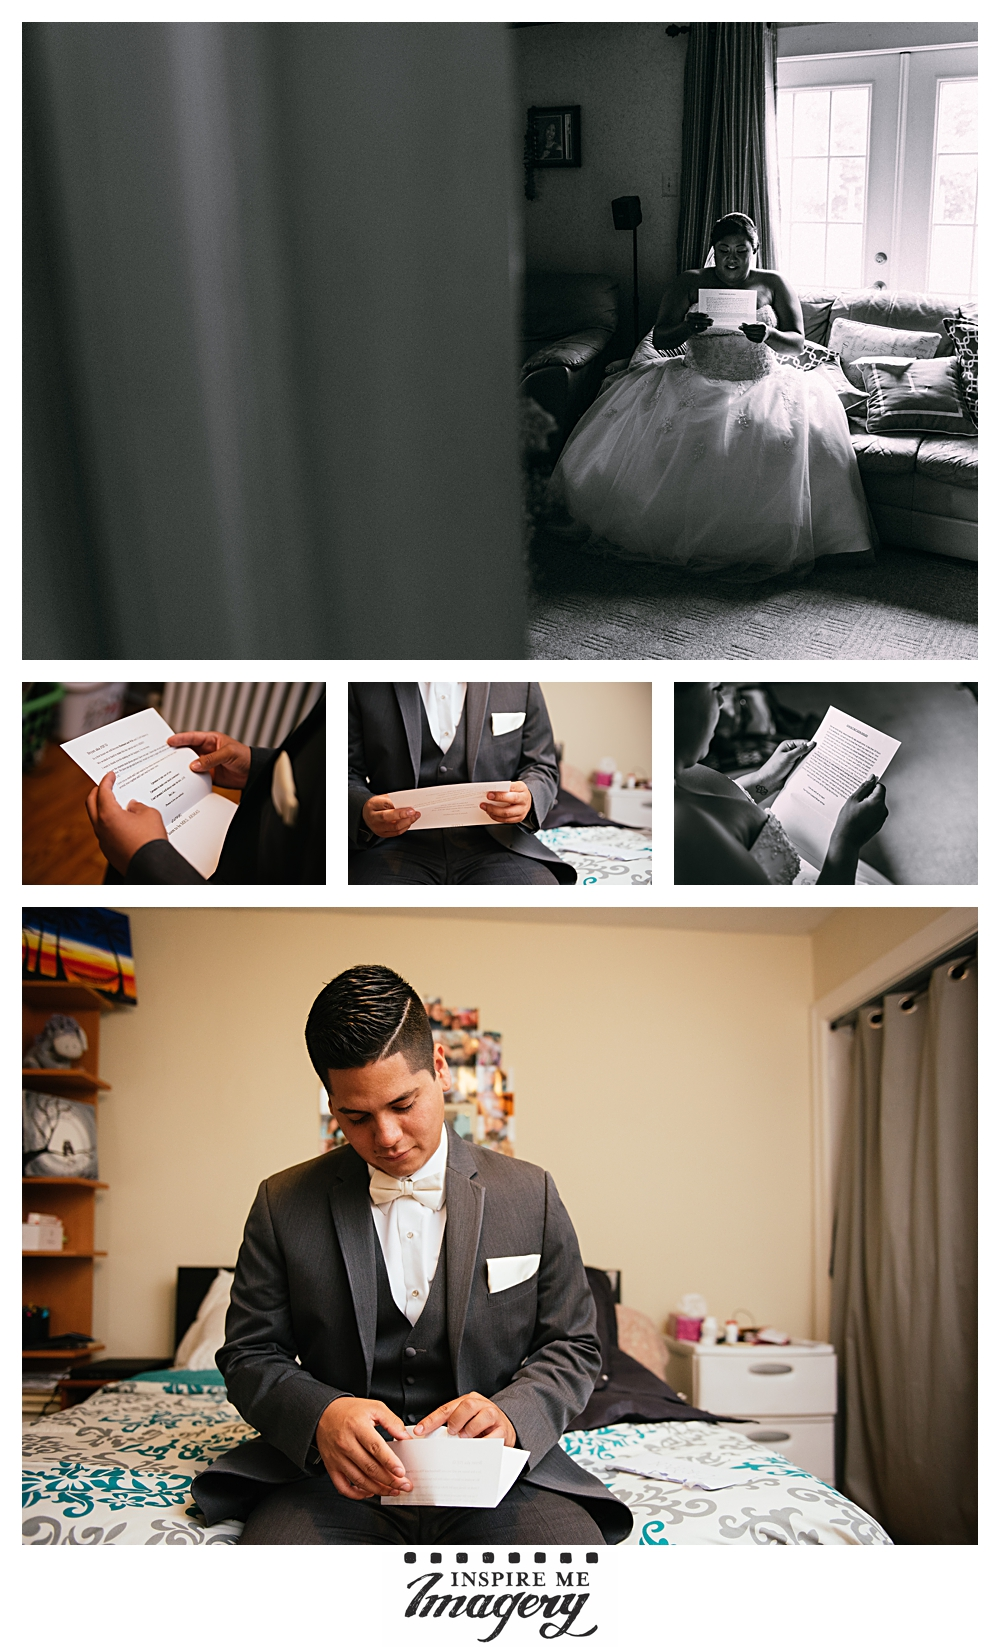 The bride and groom each set aside time for a quiet moment to read beautiful letters they wrote each other.